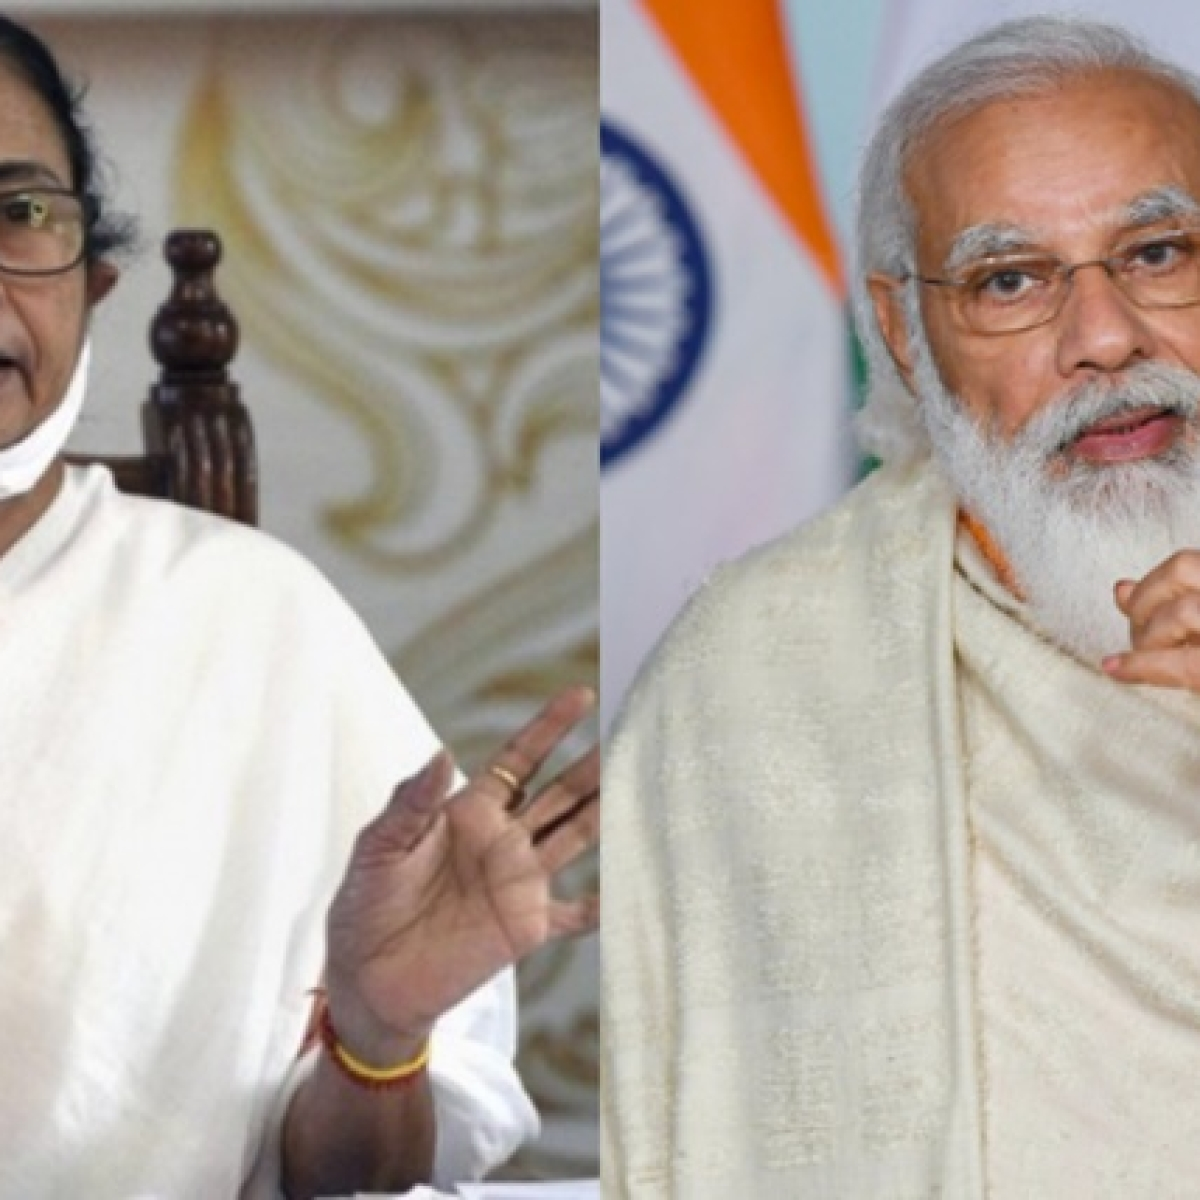 Mamata Banerjee writes to PM Modi, urges to waive taxes on COVID-19 medical equipment and drugs